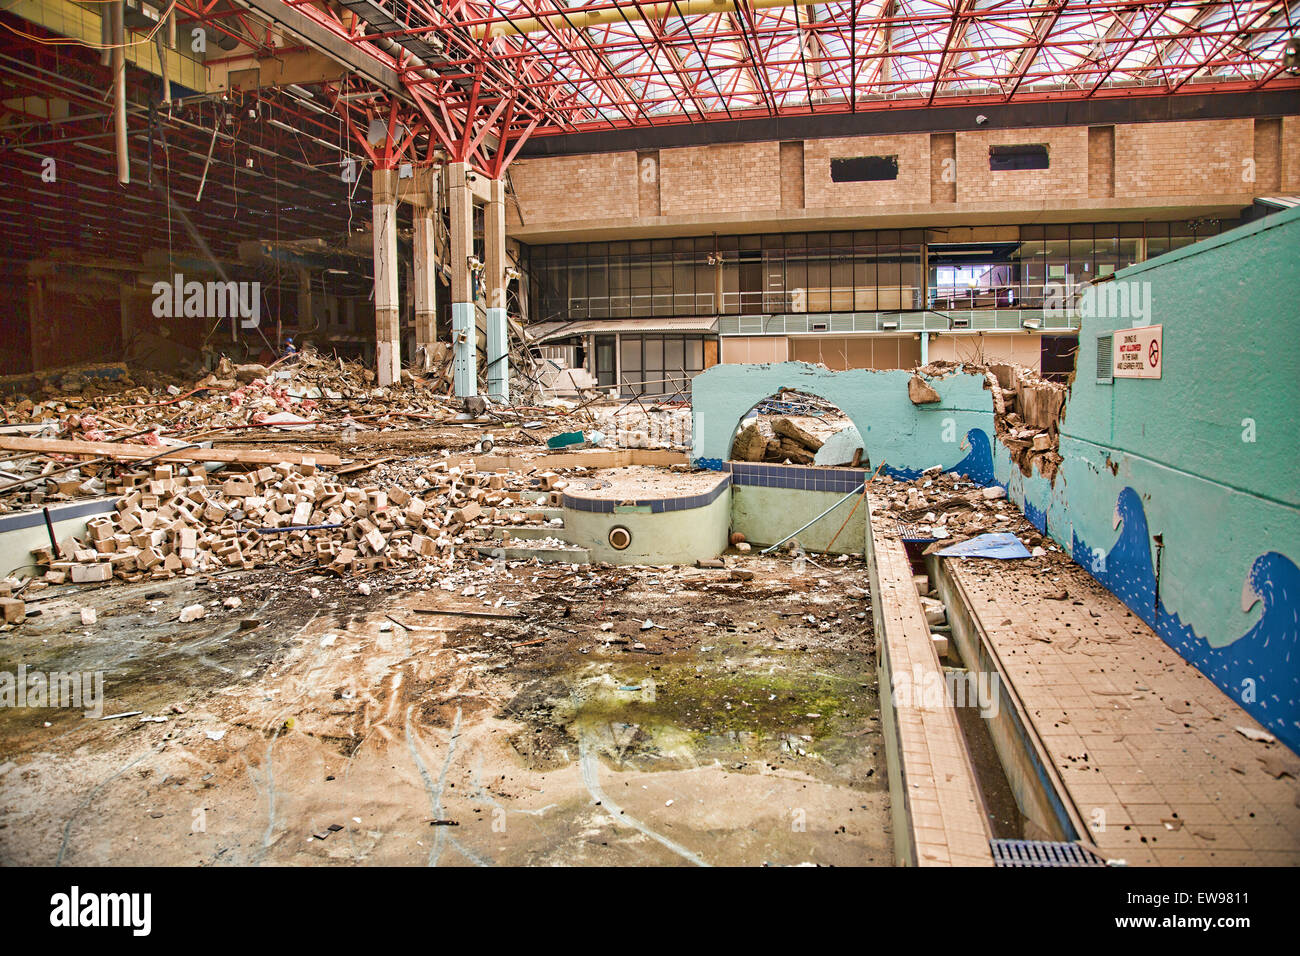 Demolition of crowtree leisure centre in sunderland england a view stock photo royalty free for Washington swimming pool sunderland